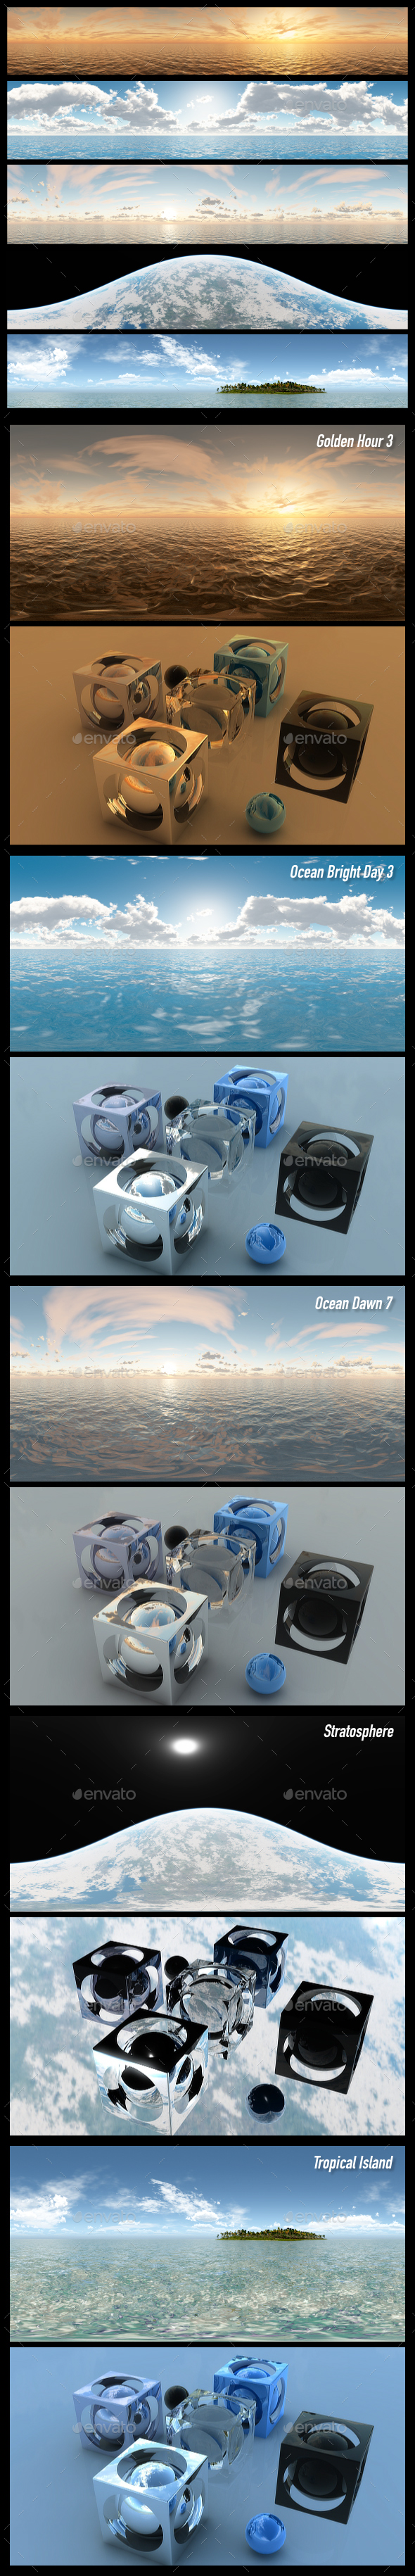 HDRI Pack 8 - 3DOcean Item for Sale